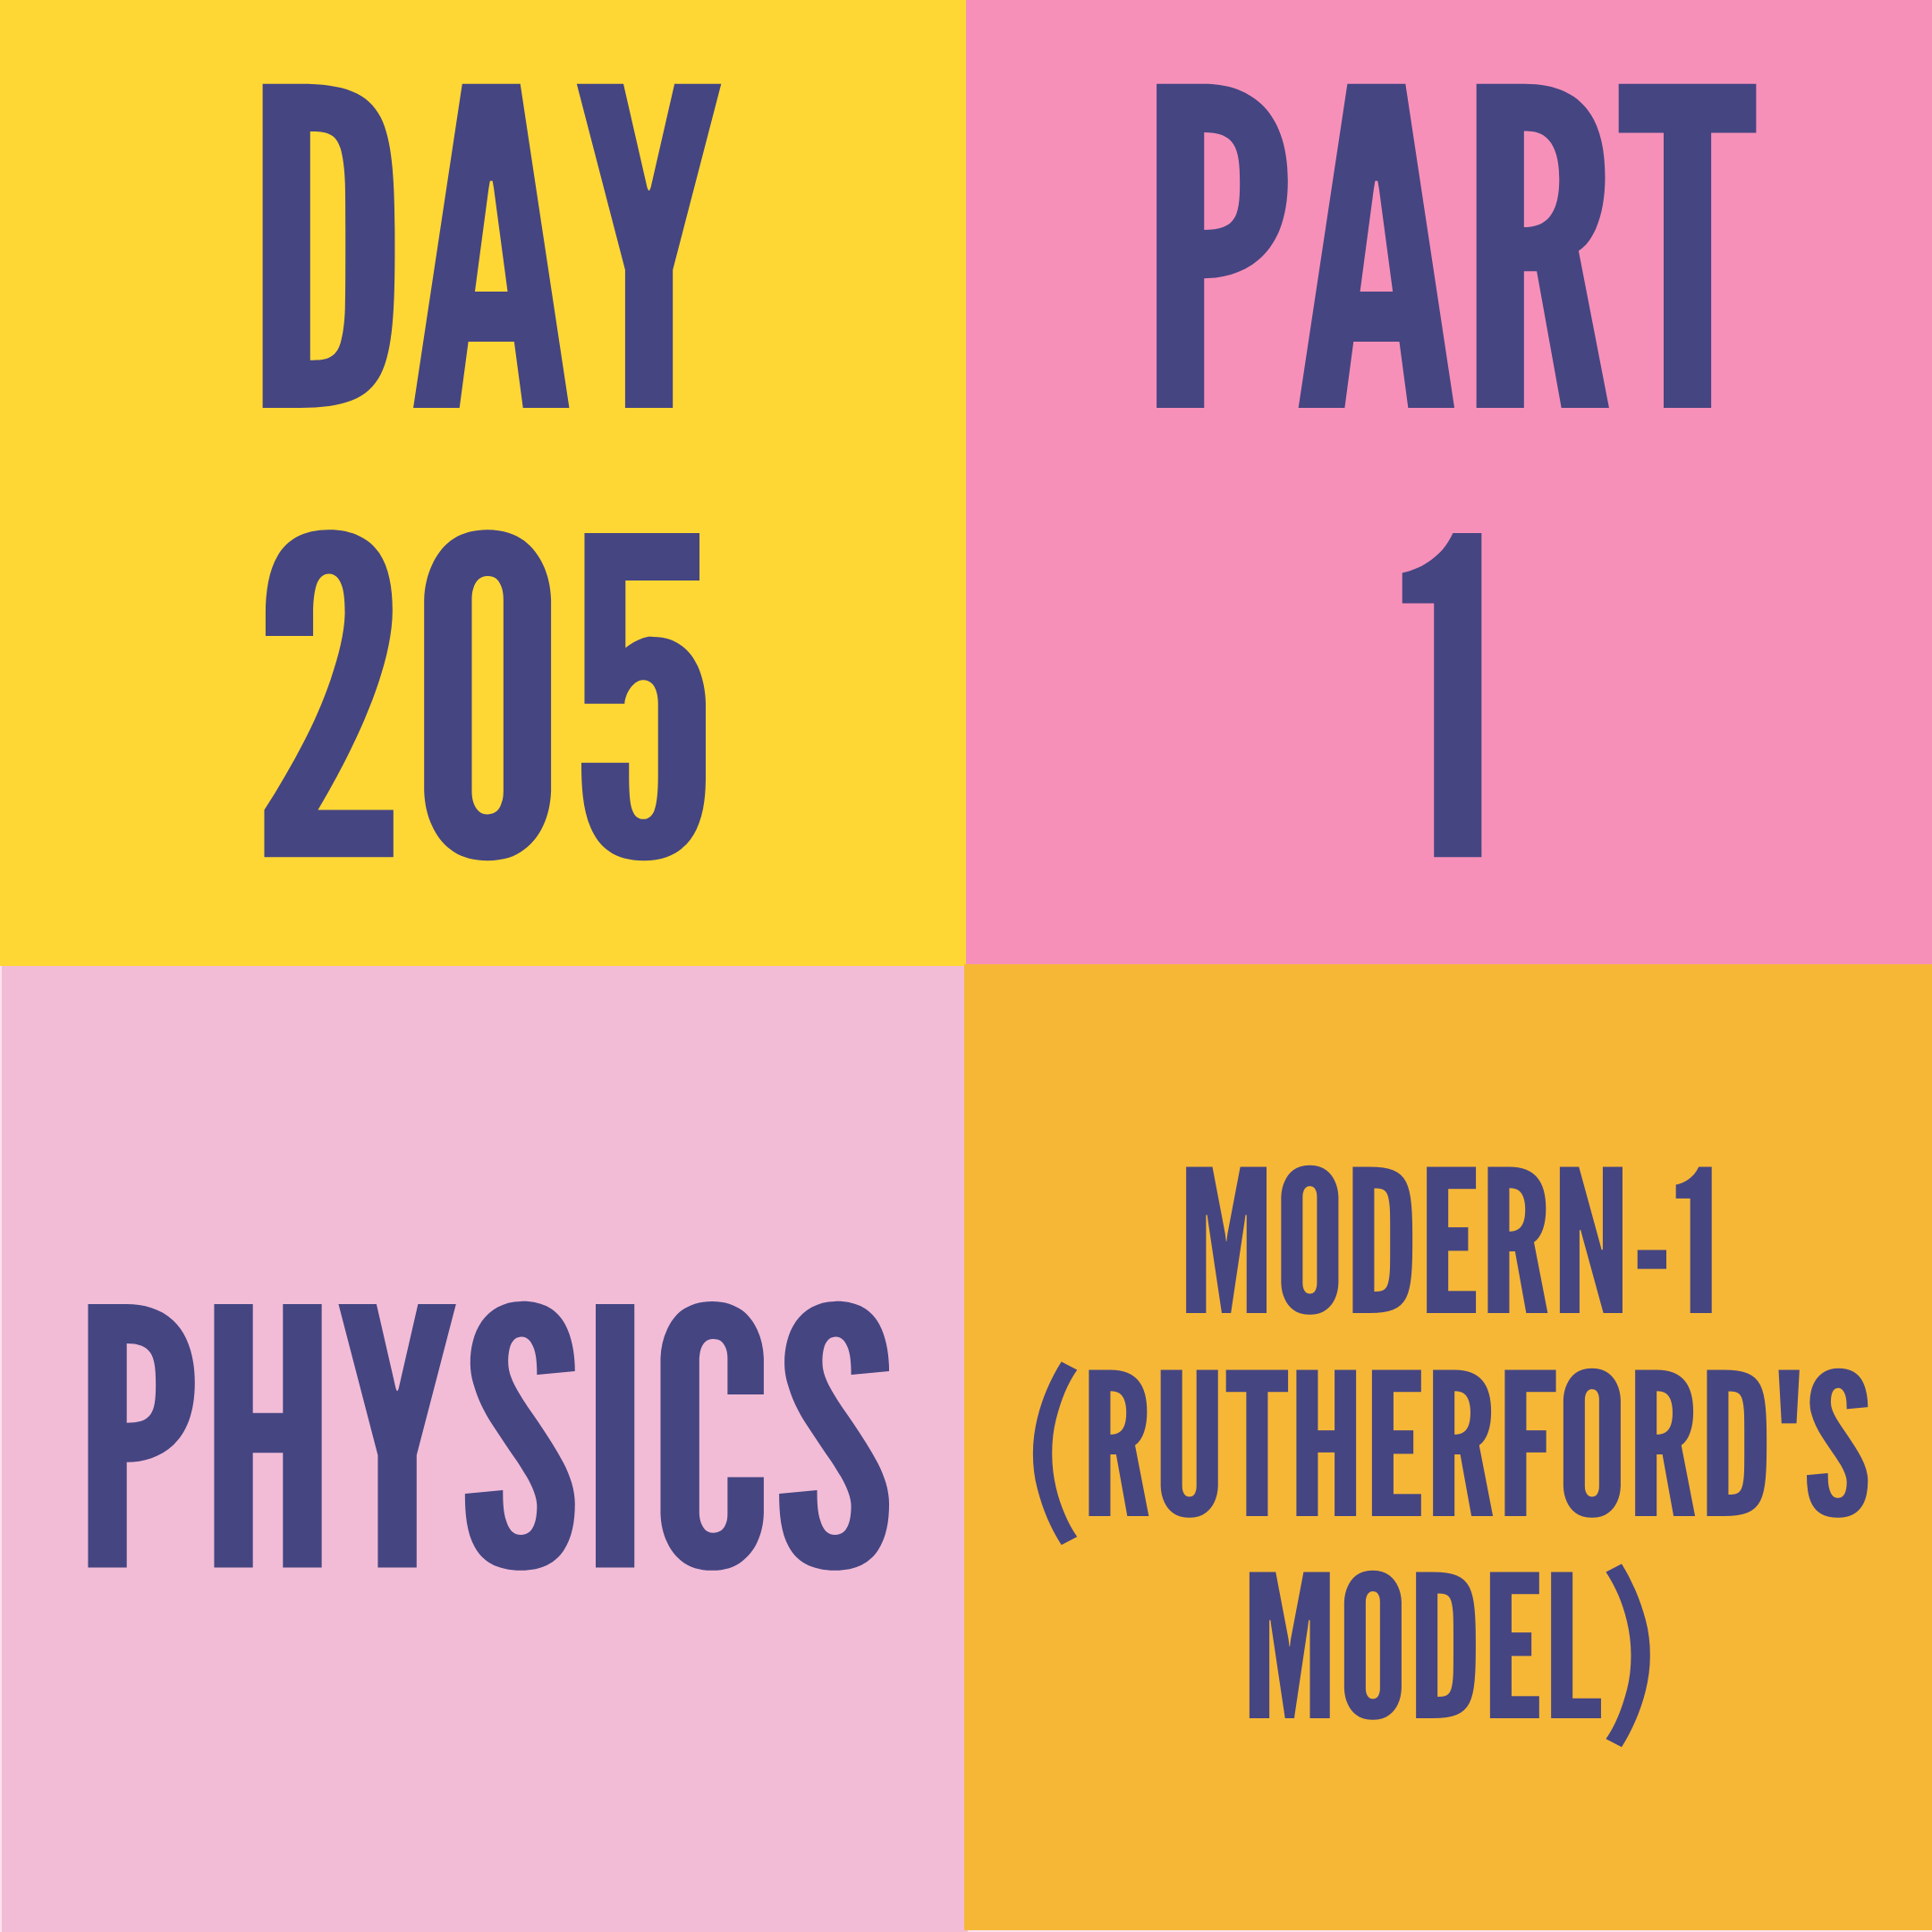 DAY-205 PART-1 MODERN-1 (RUTHERFORD'S MODEL)